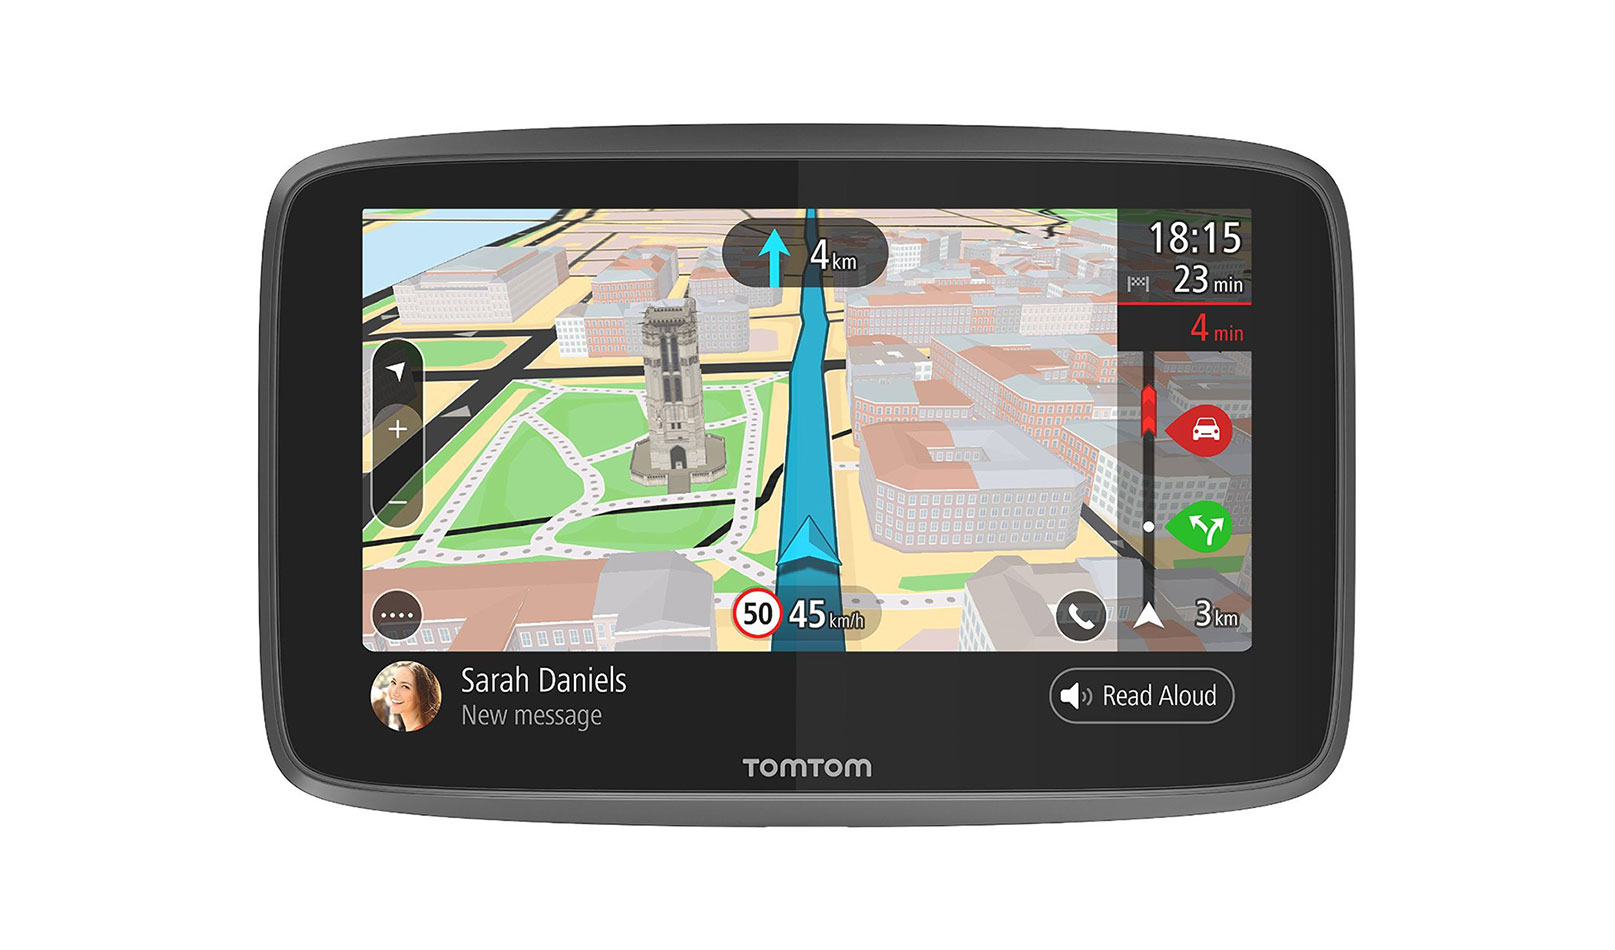 tomtom go 6200 im vergleich navigation gps blitzer pois. Black Bedroom Furniture Sets. Home Design Ideas